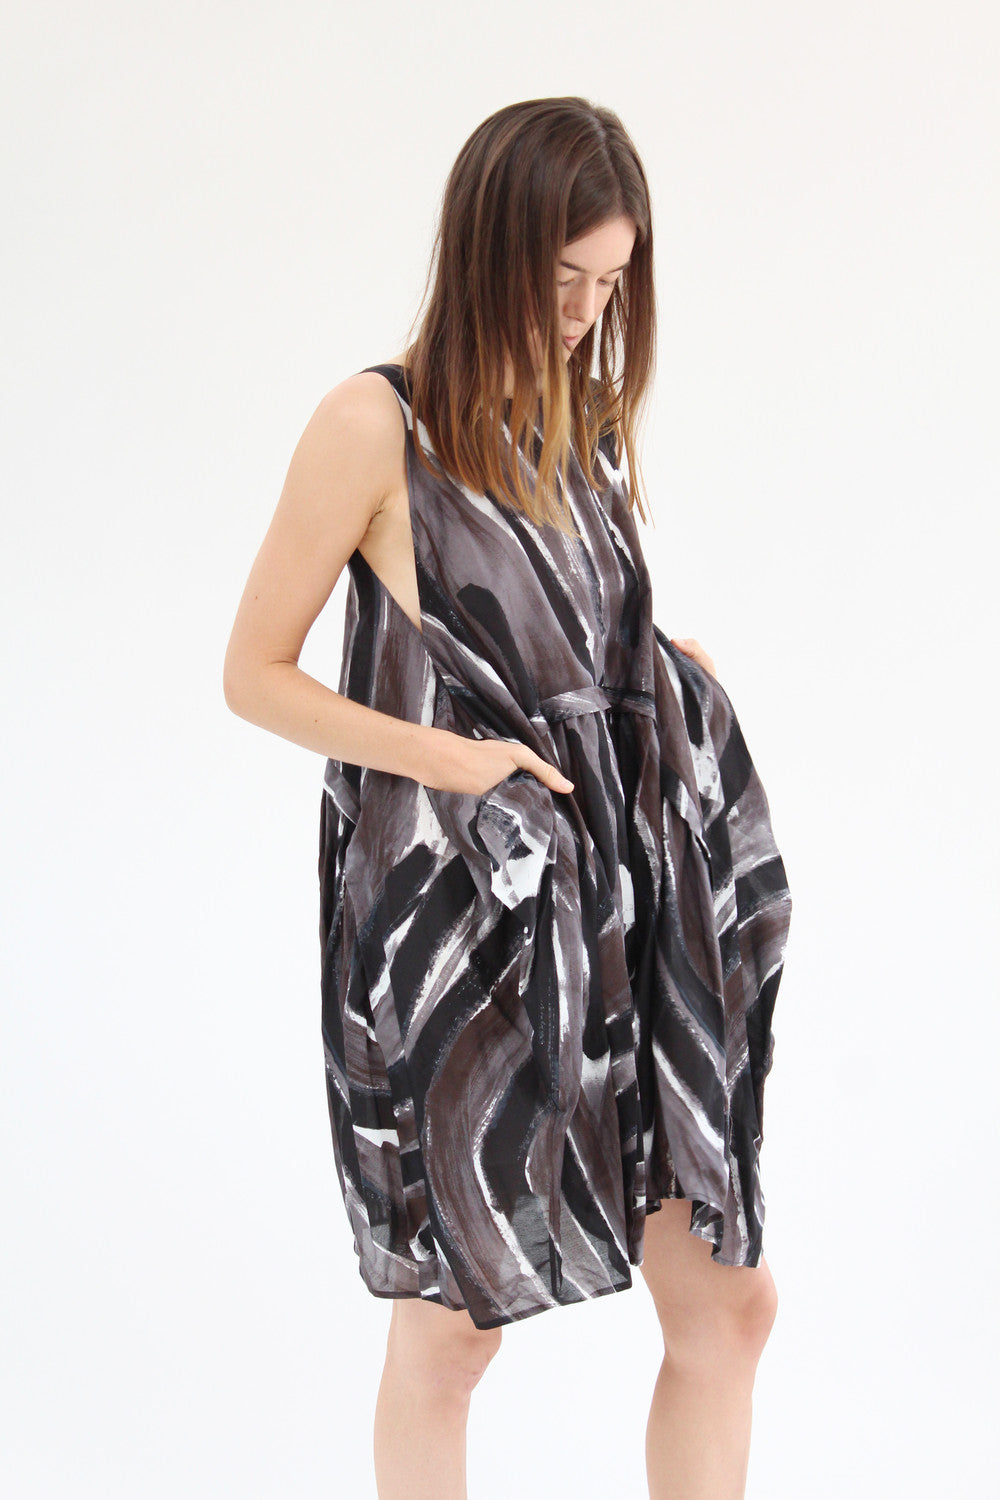 Lina Rennell Silk Robe Dress Japan Trip